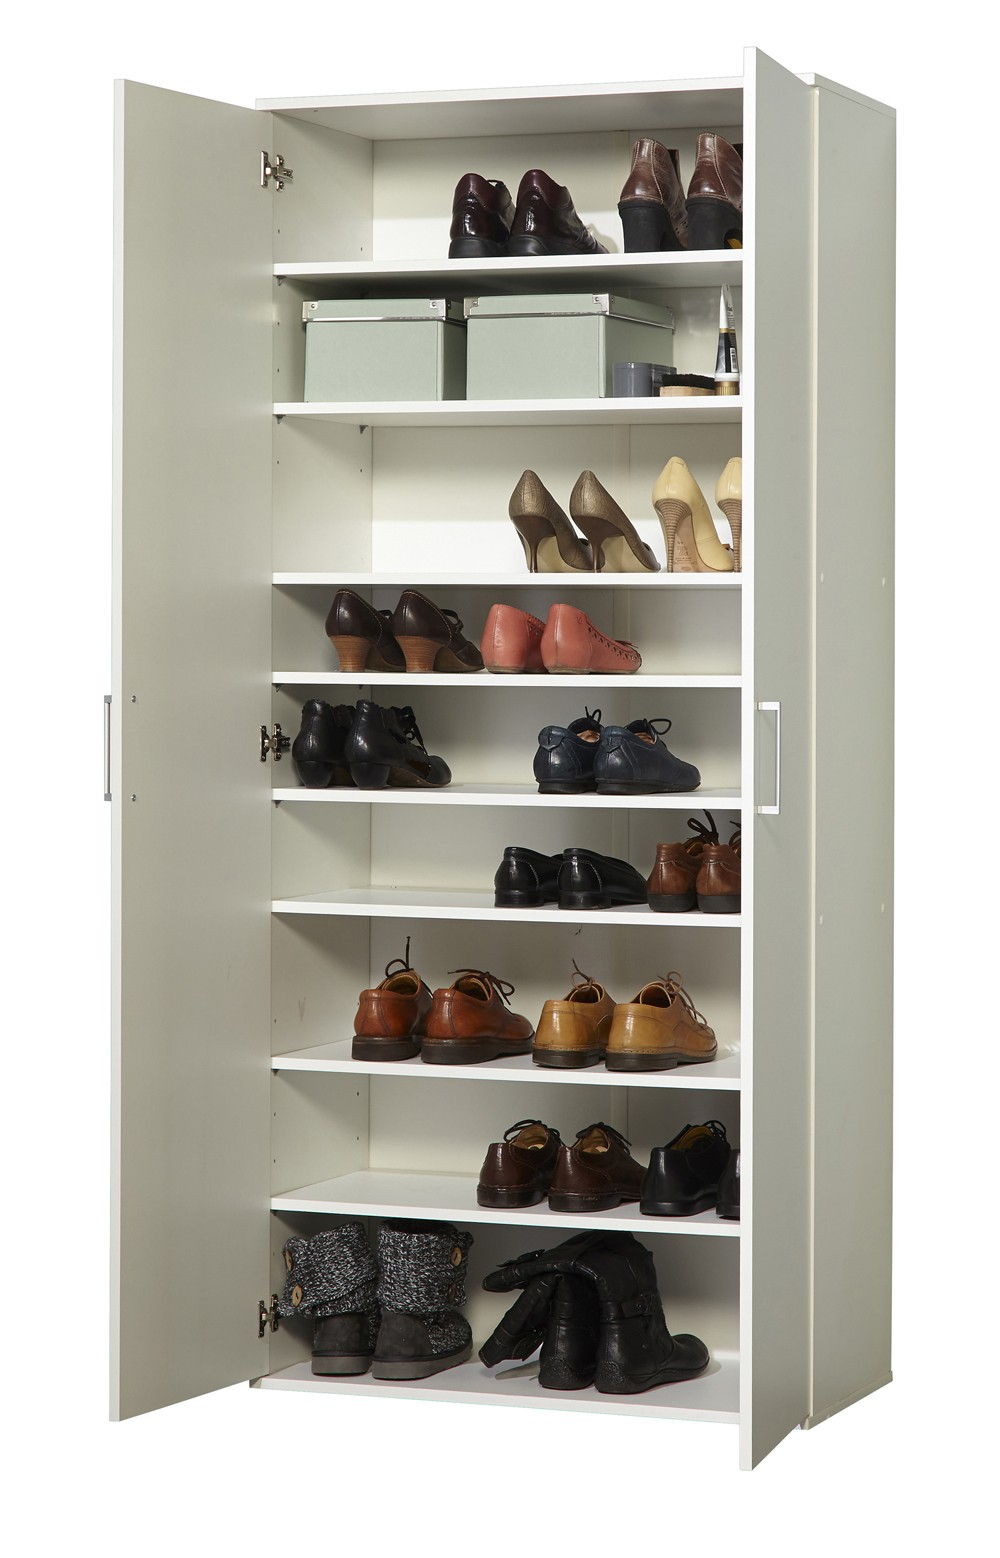 schuhschrank 2 t rig mod w024 weiss h c m bel. Black Bedroom Furniture Sets. Home Design Ideas